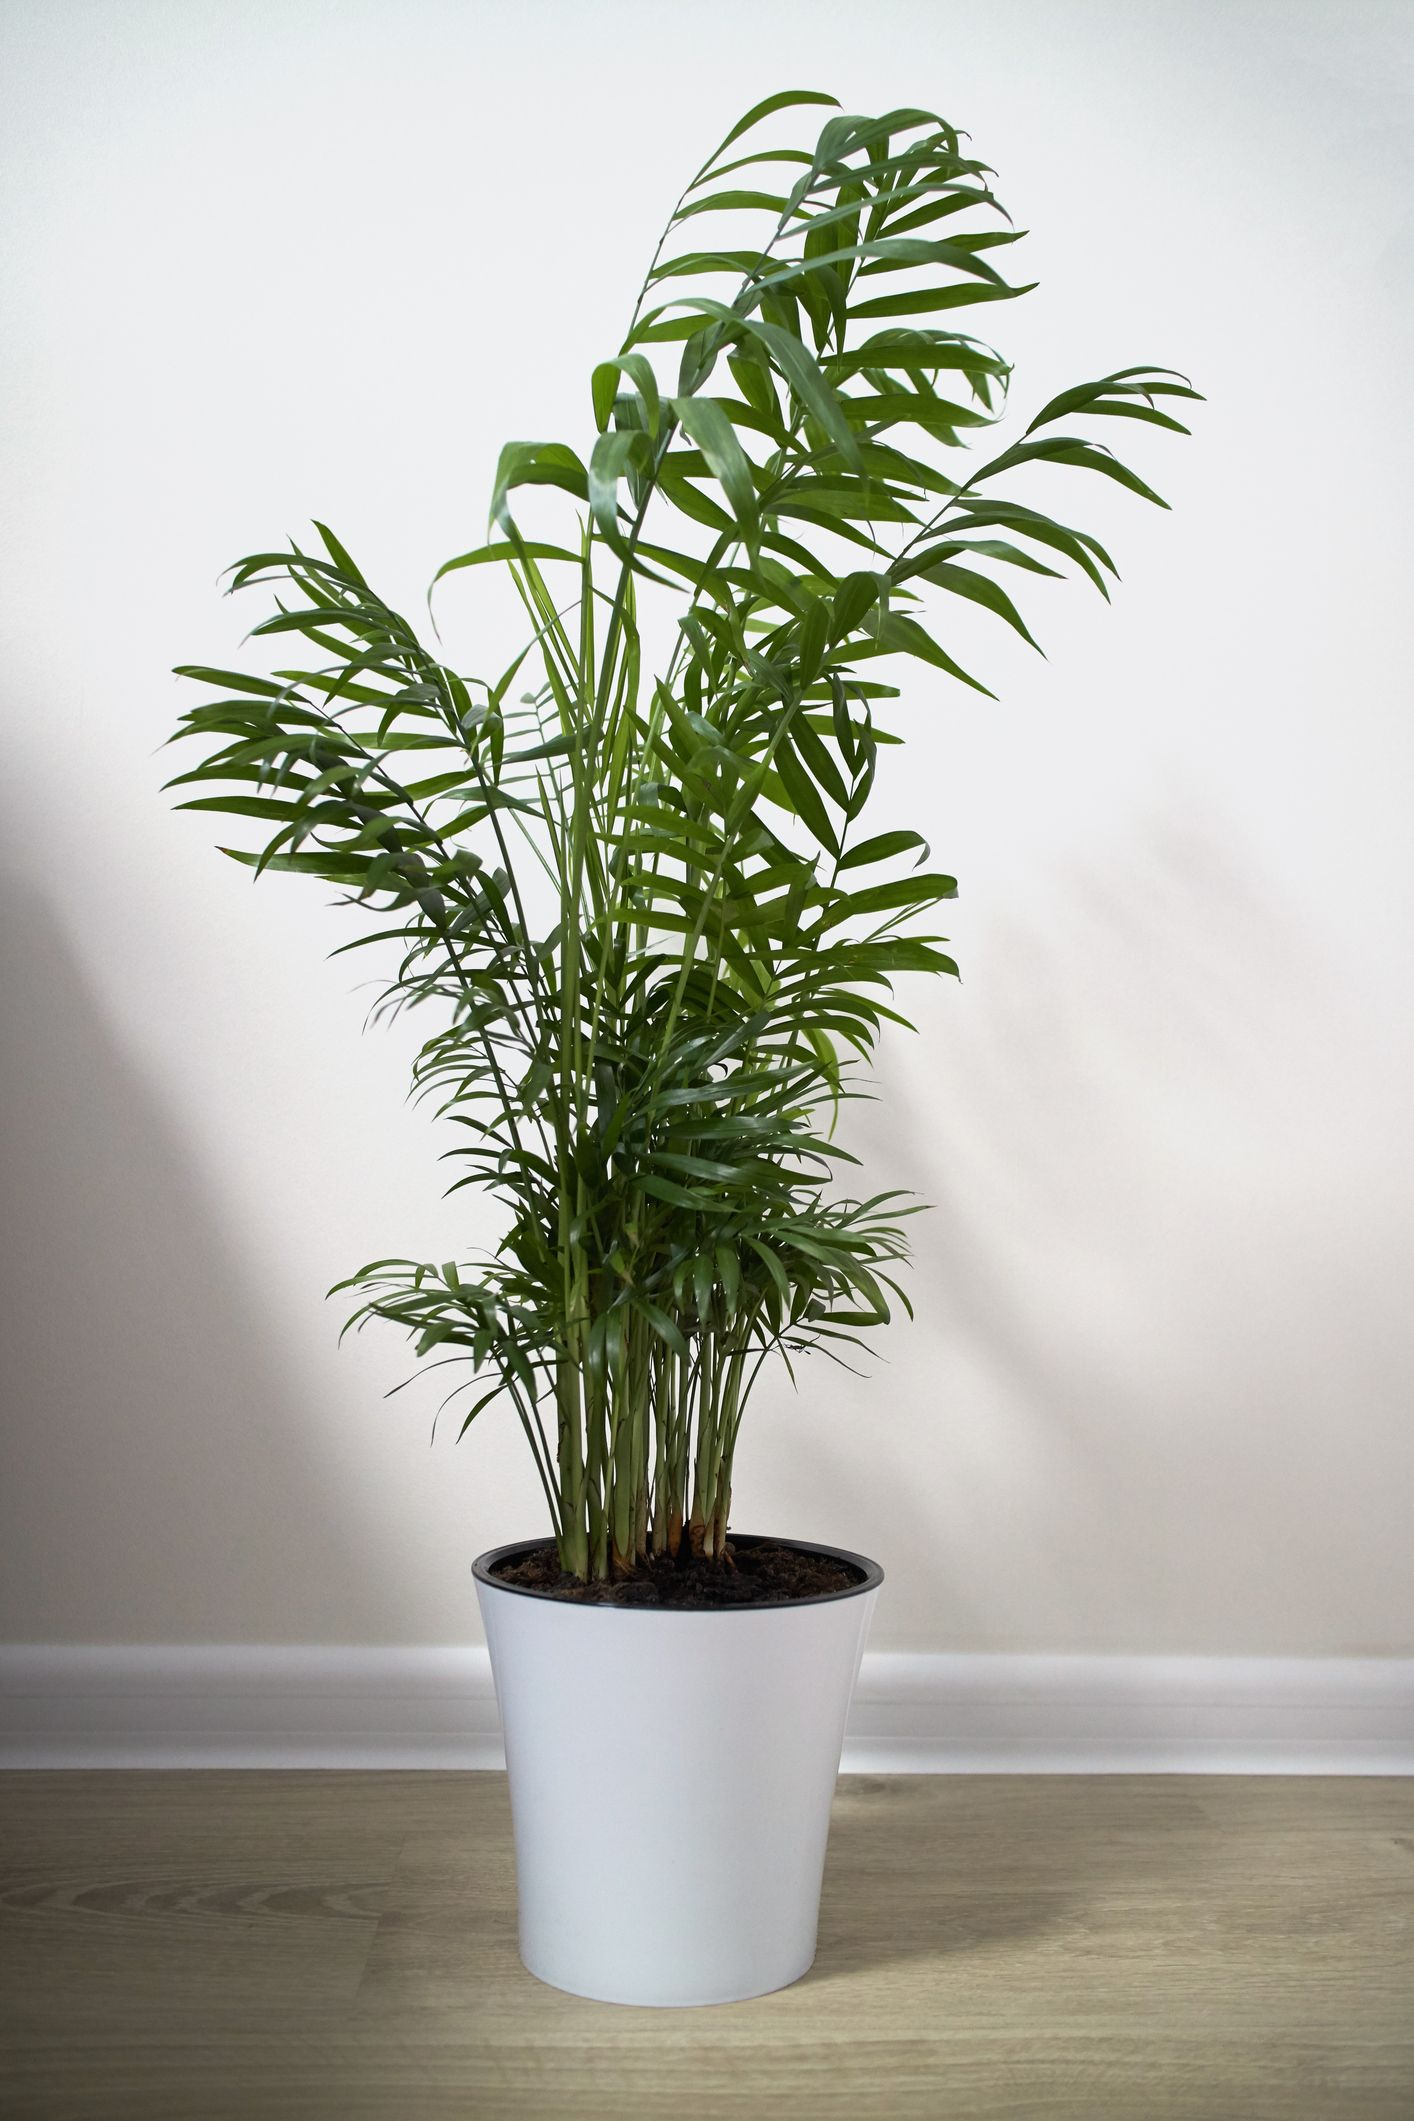 Indoor home office plants royalty Homegram Image Pinterest 12 Houseplants That Can Survive Low Light Best Indoor Low Light Plants